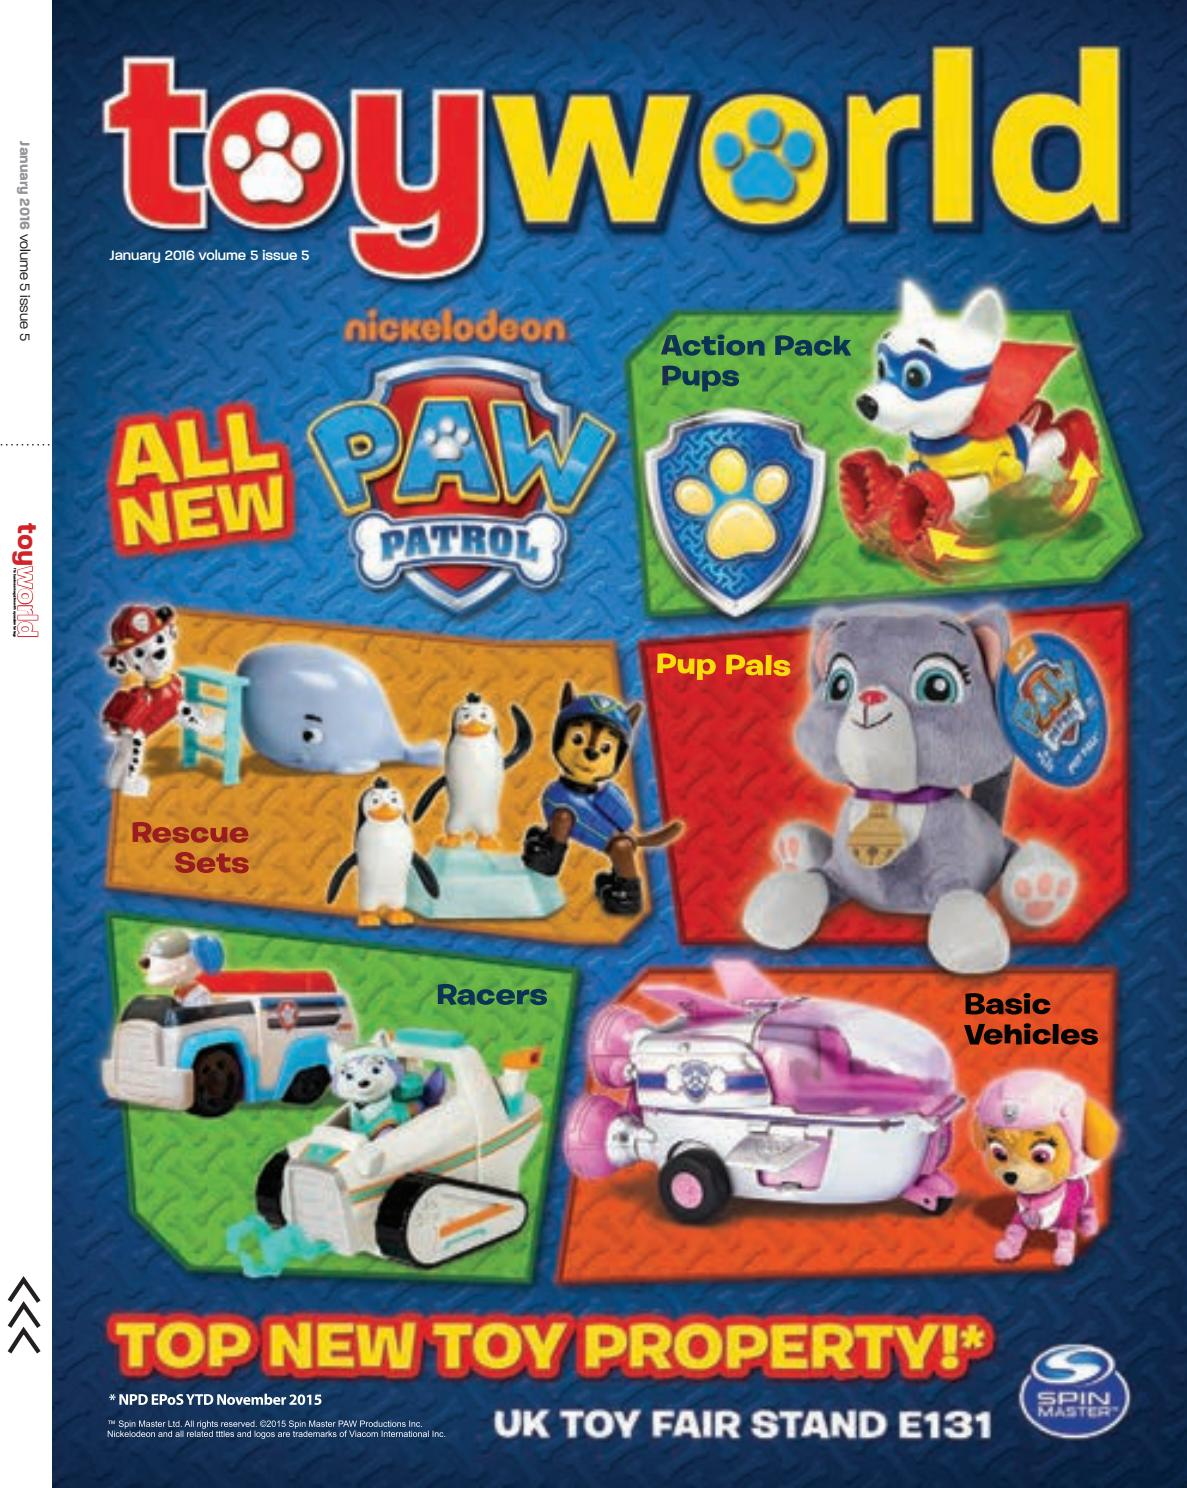 e406448ea Toyworld jan 2016 by TOYWORLD MAGAZINE - issuu